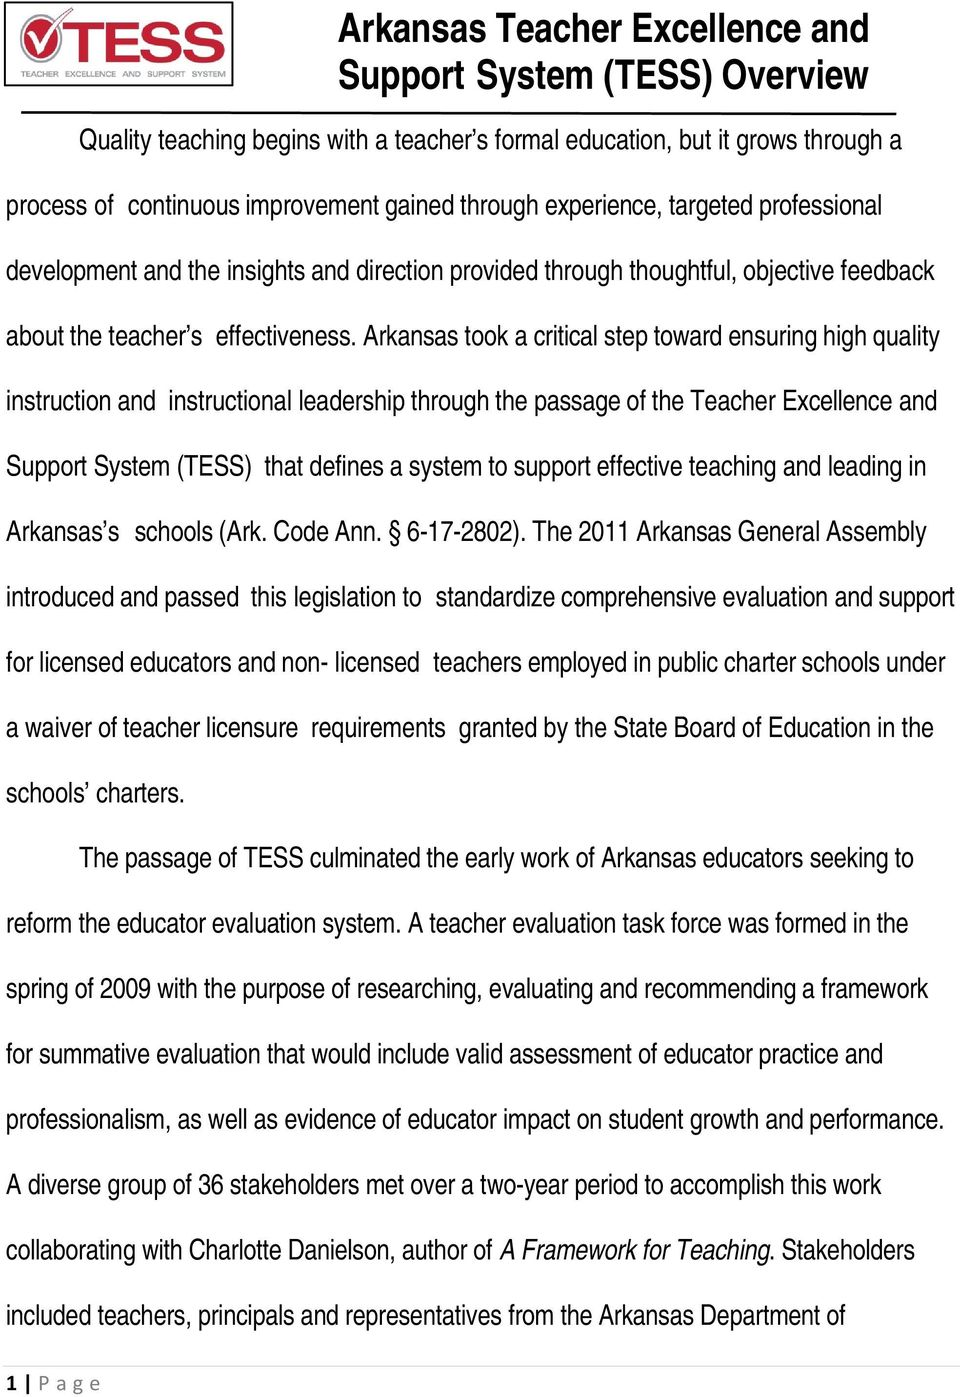 Arkansas took a critical step toward ensuring high quality instruction and instructional leadership through the passage of the Teacher Excellence and Support System (TESS) that defines a system to